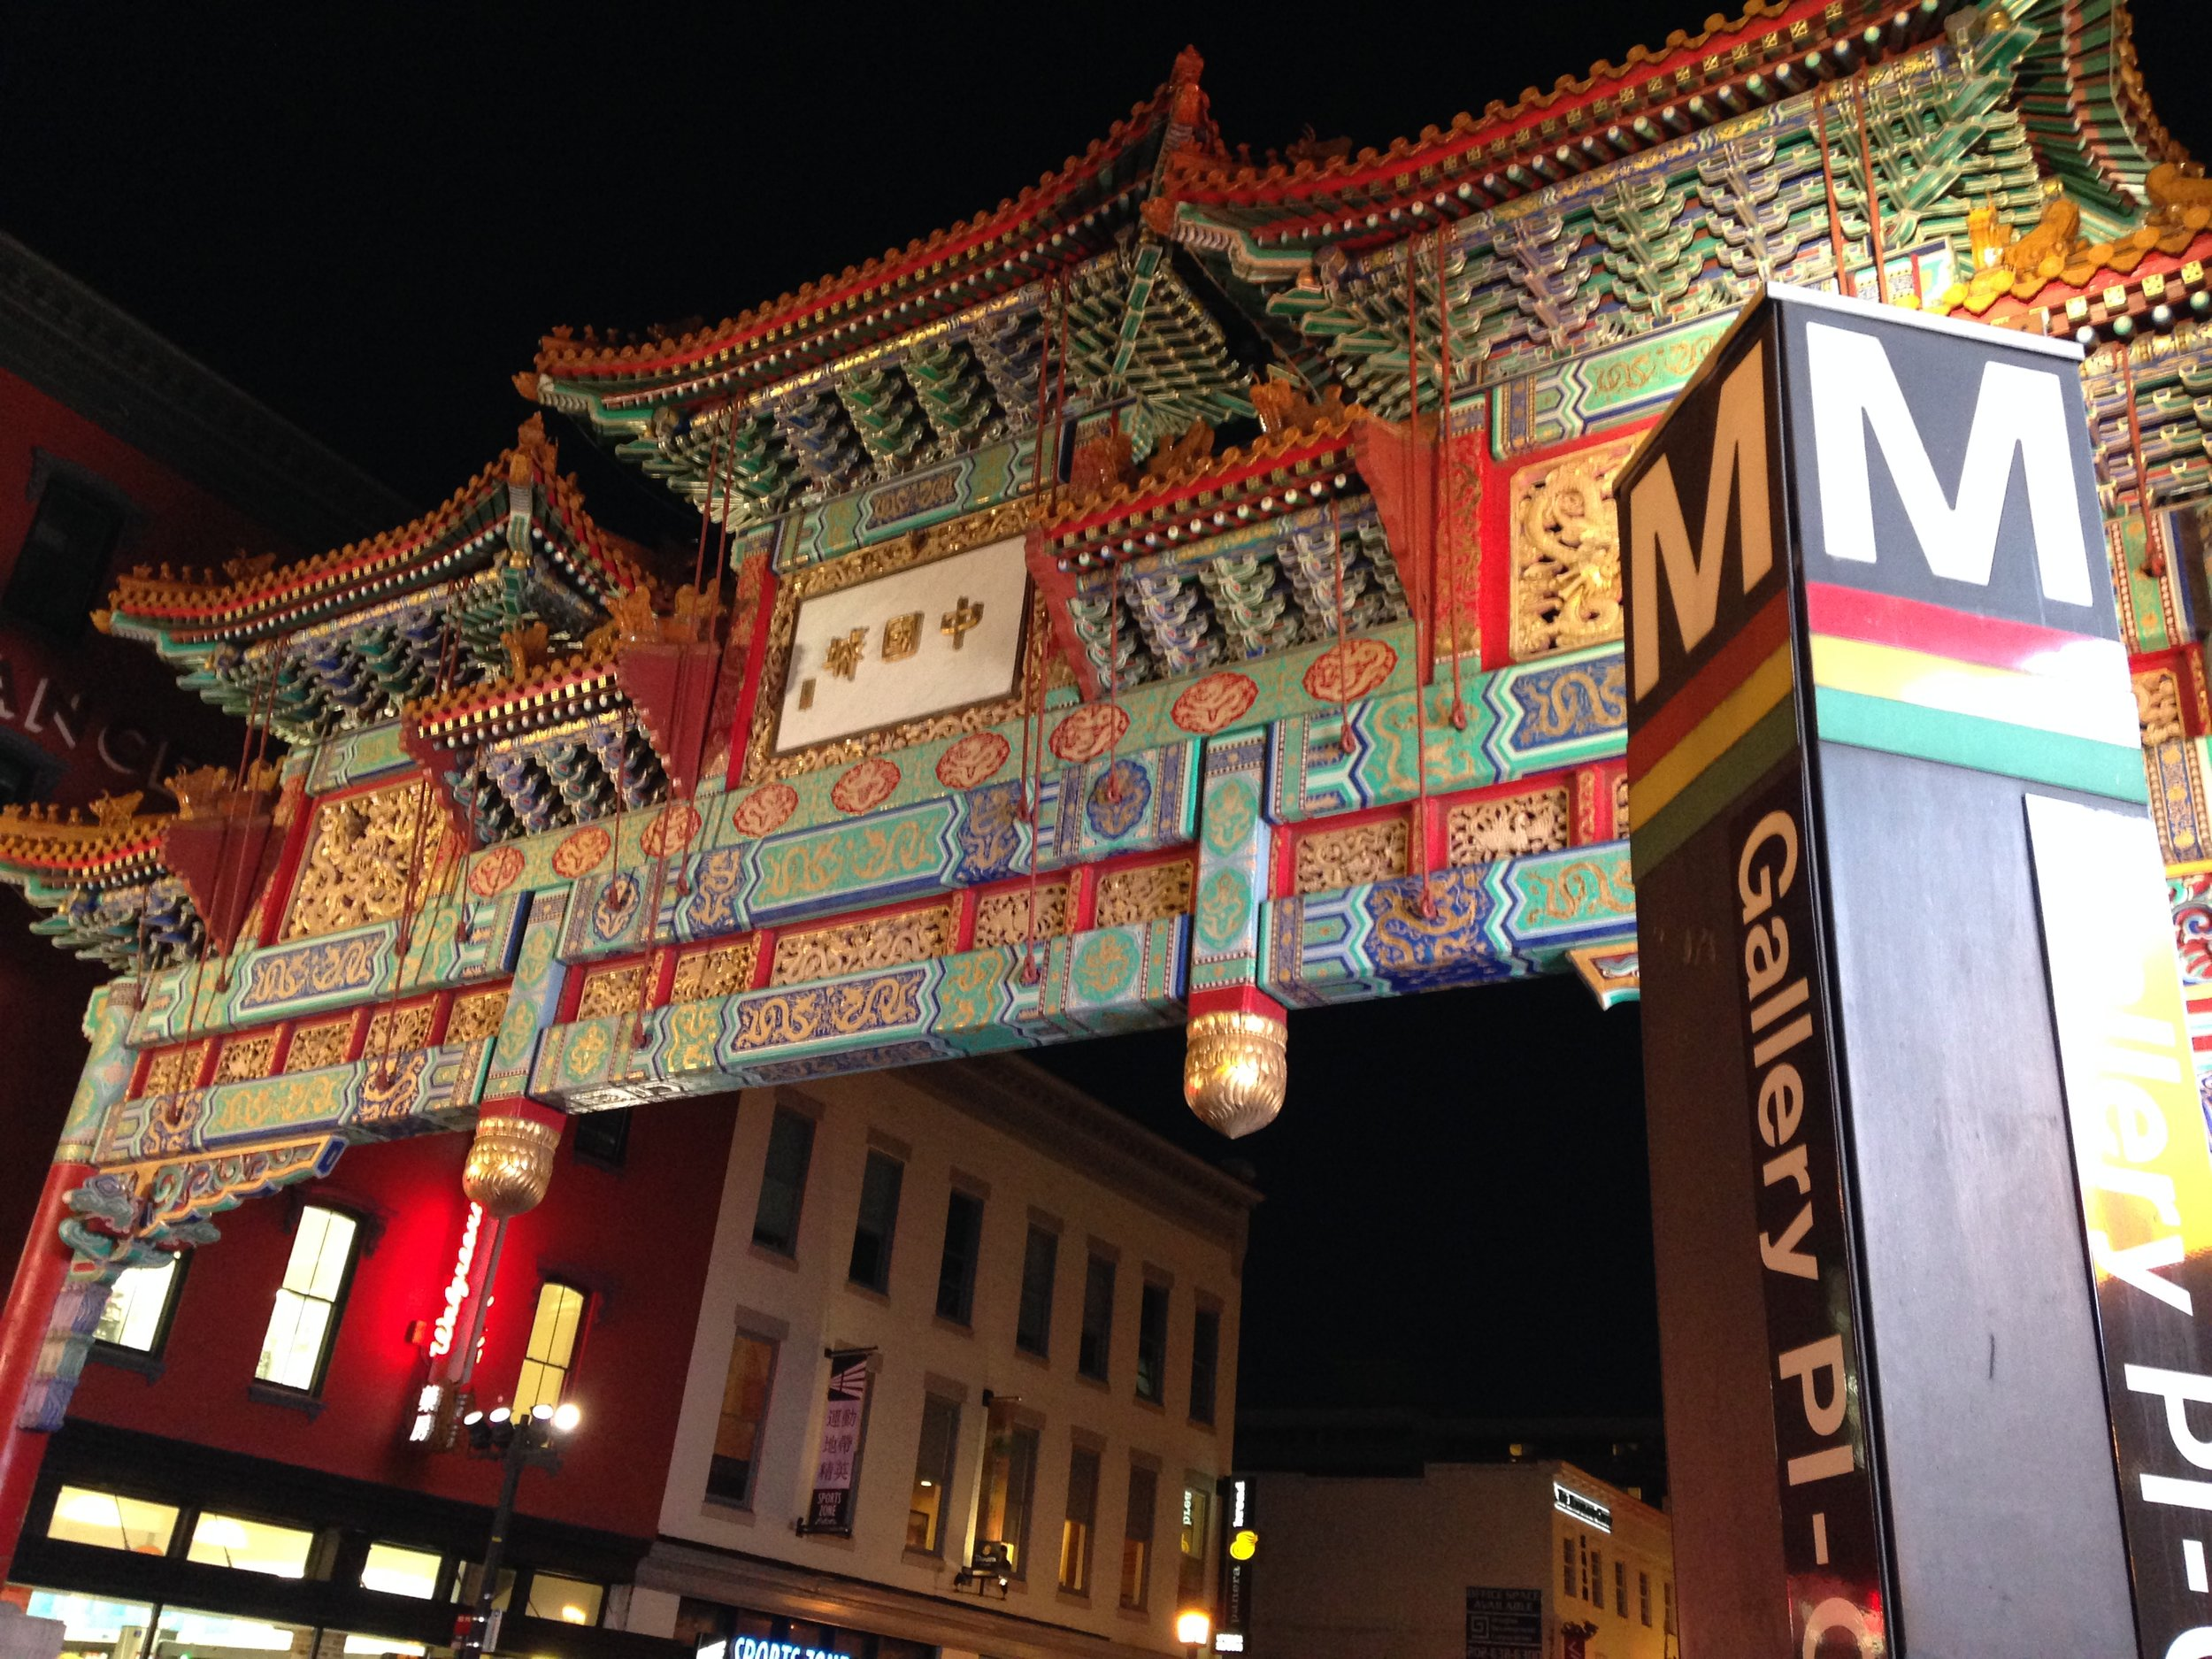 THE OFFICIAL ENTRANCE TO CHINATOWN